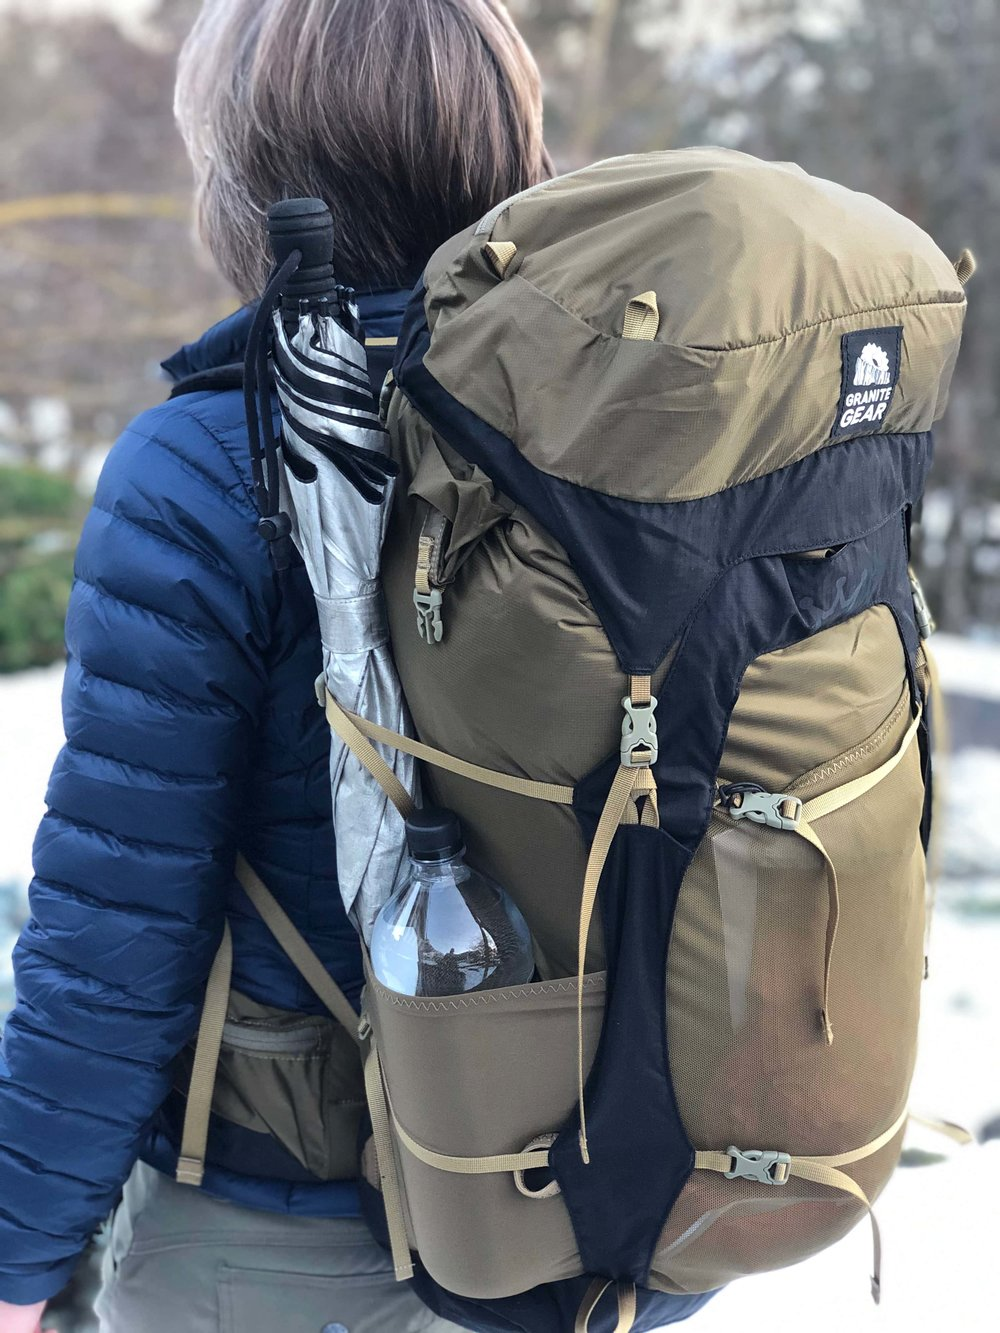 The Granite Gear Crown2 60 is our budget pick. The side pocket holds a 1 liter water bottle and a full size hiking umbrella.   Photo by Mike Unger.